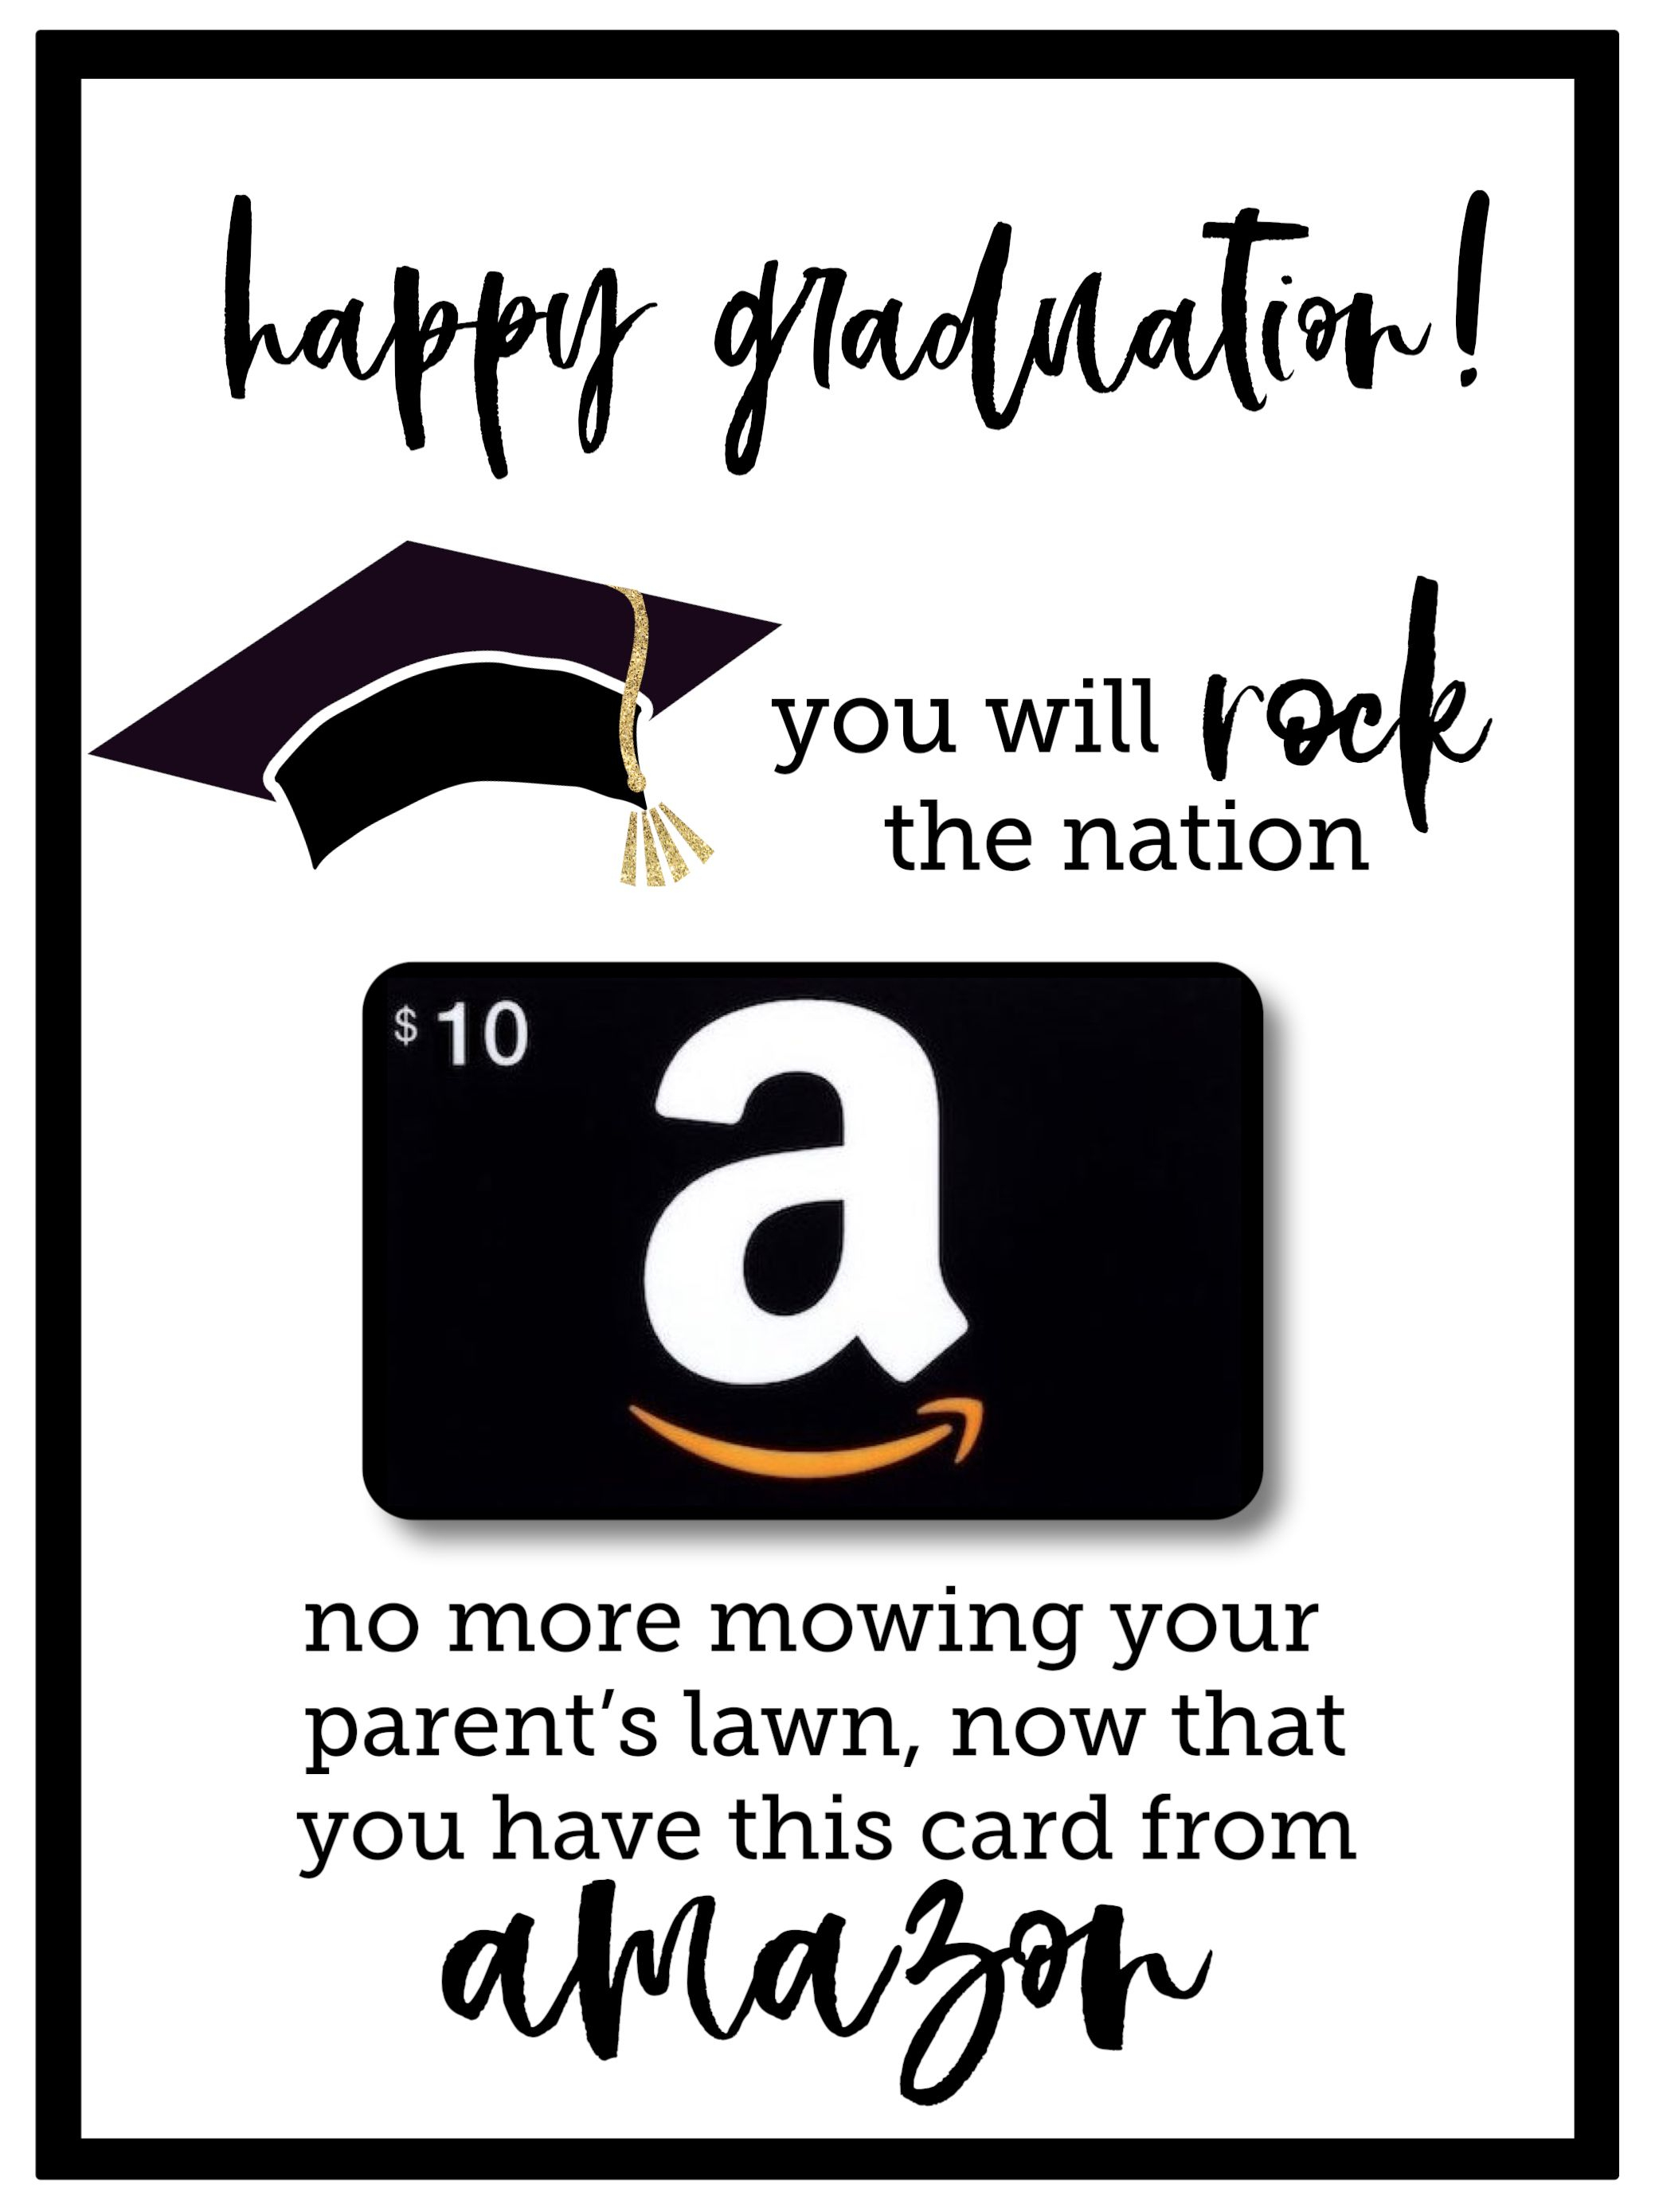 Free Printable Graduation Card | Gifts | Pinterest | Graduation - Graduation Cards Free Printable Funny